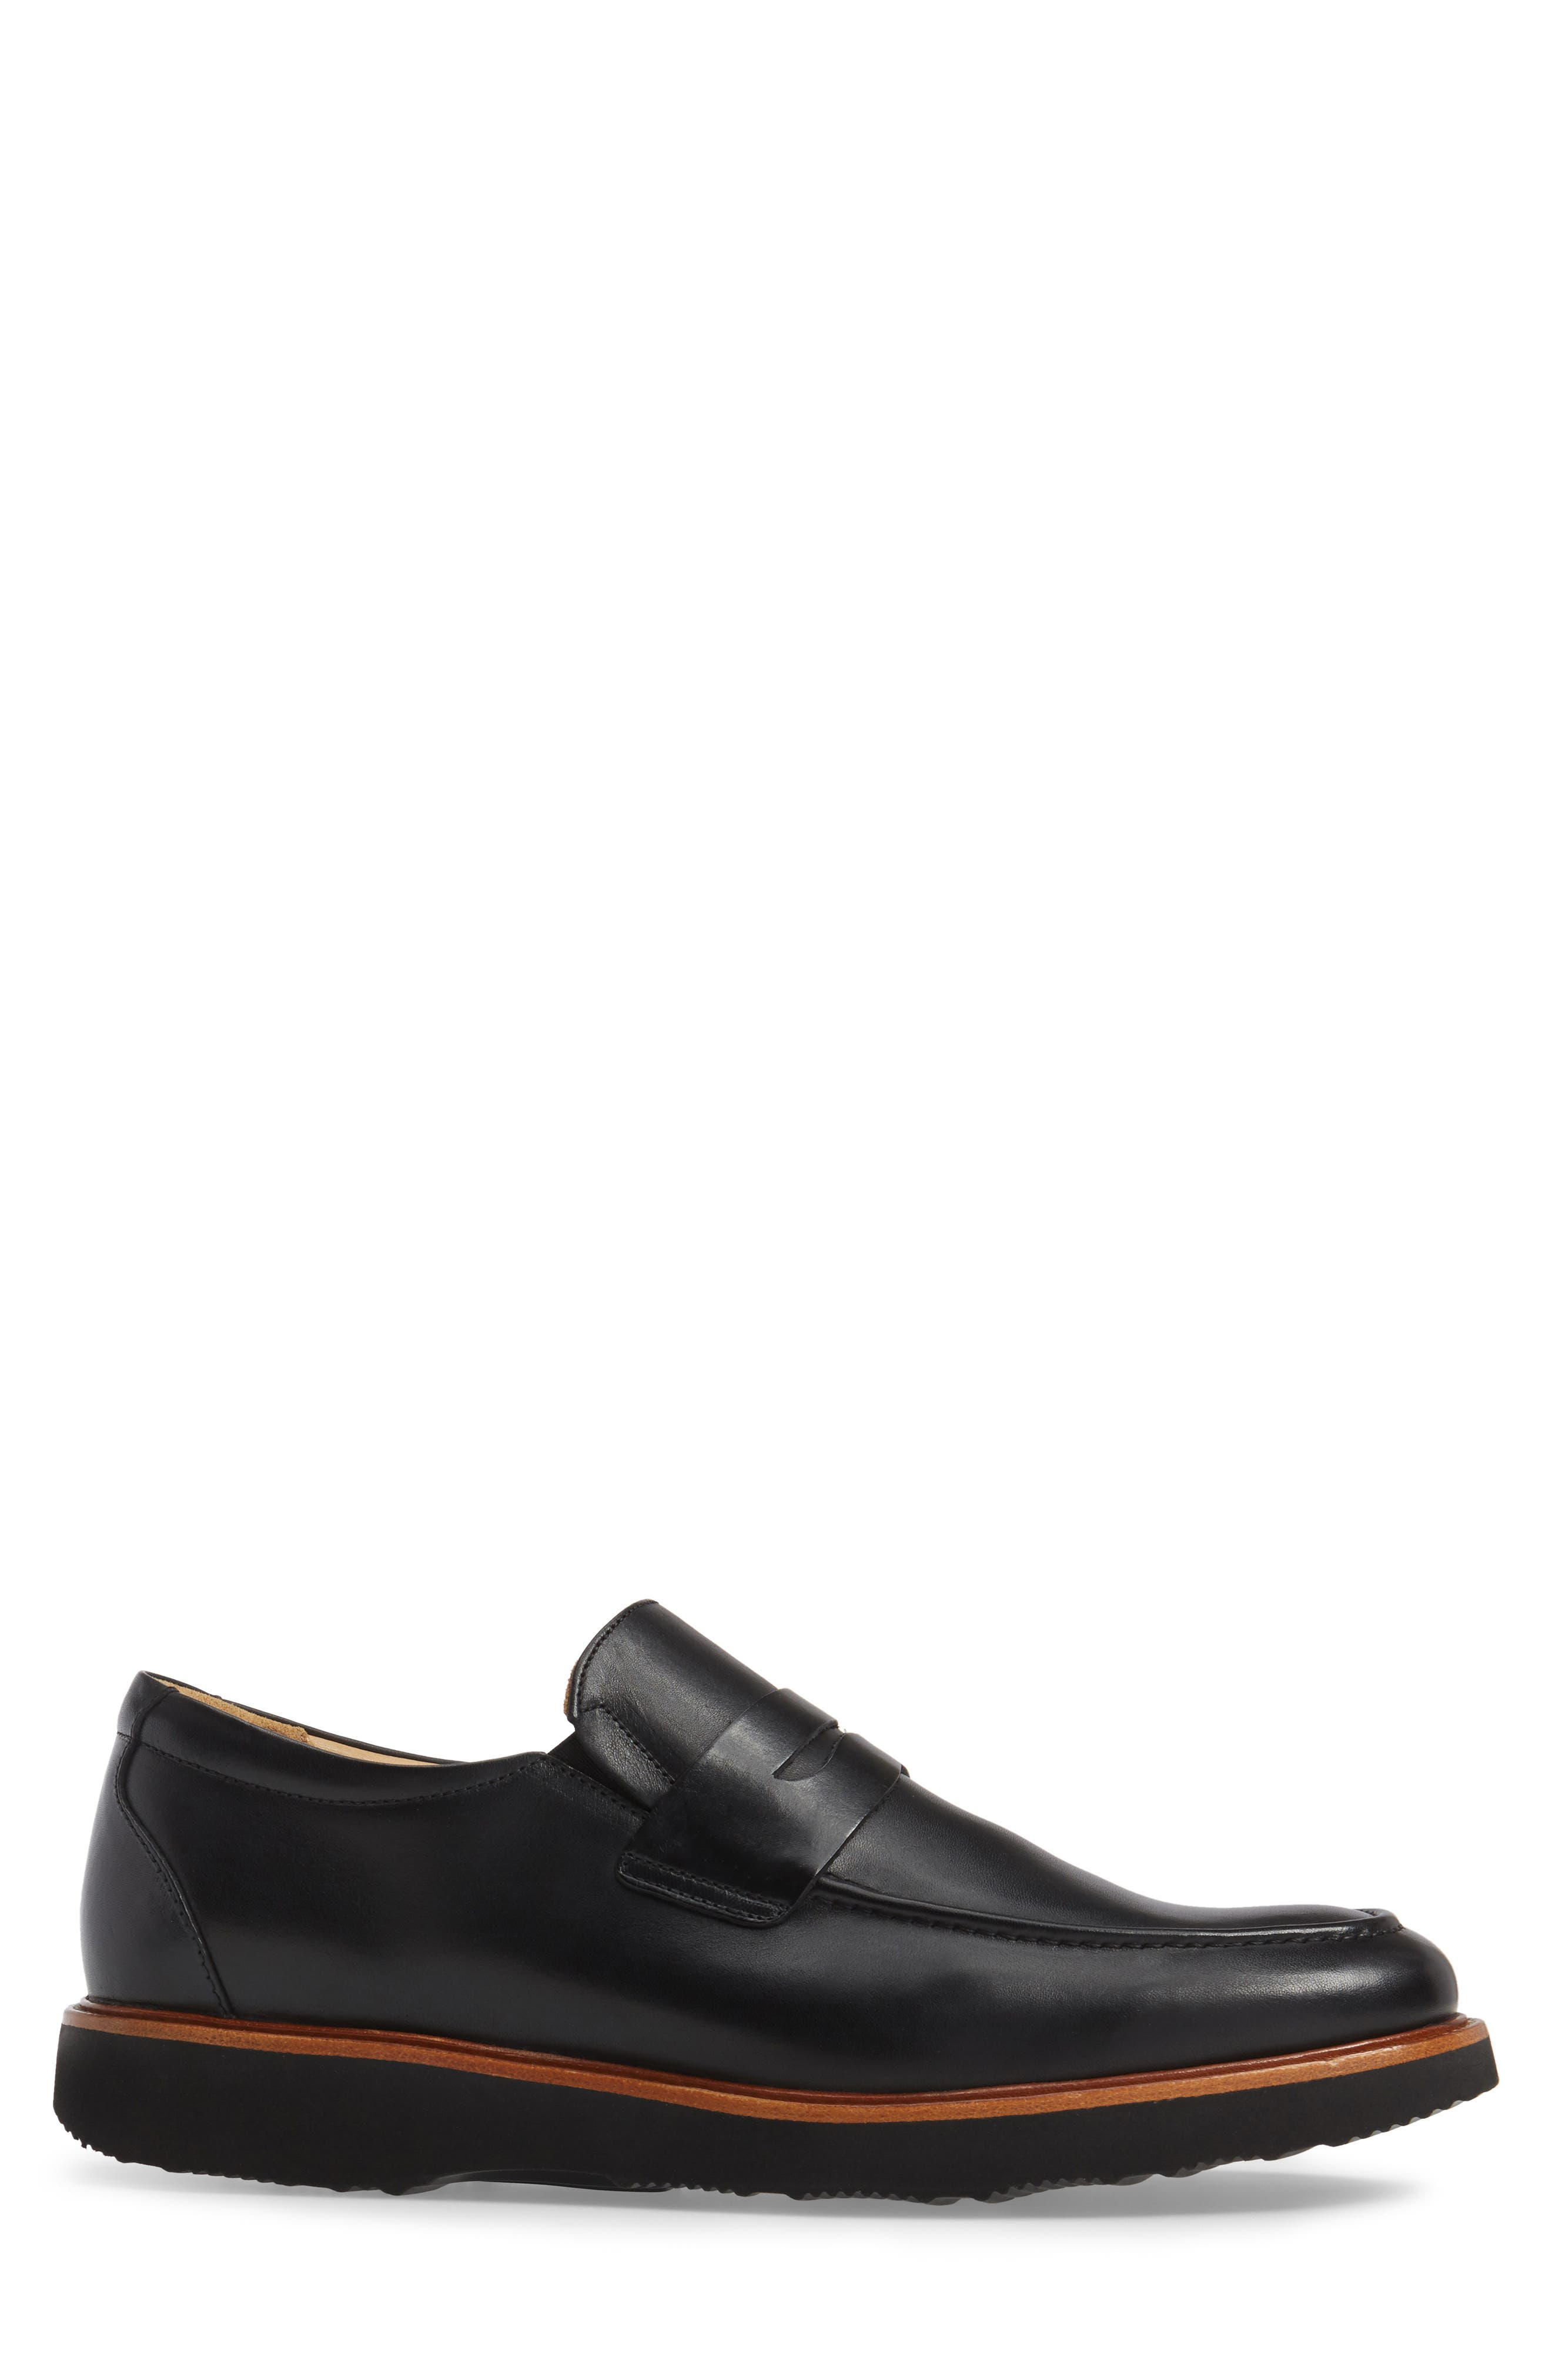 Ivy Legend Penny Loafer,                             Alternate thumbnail 3, color,                             Black Full Grain